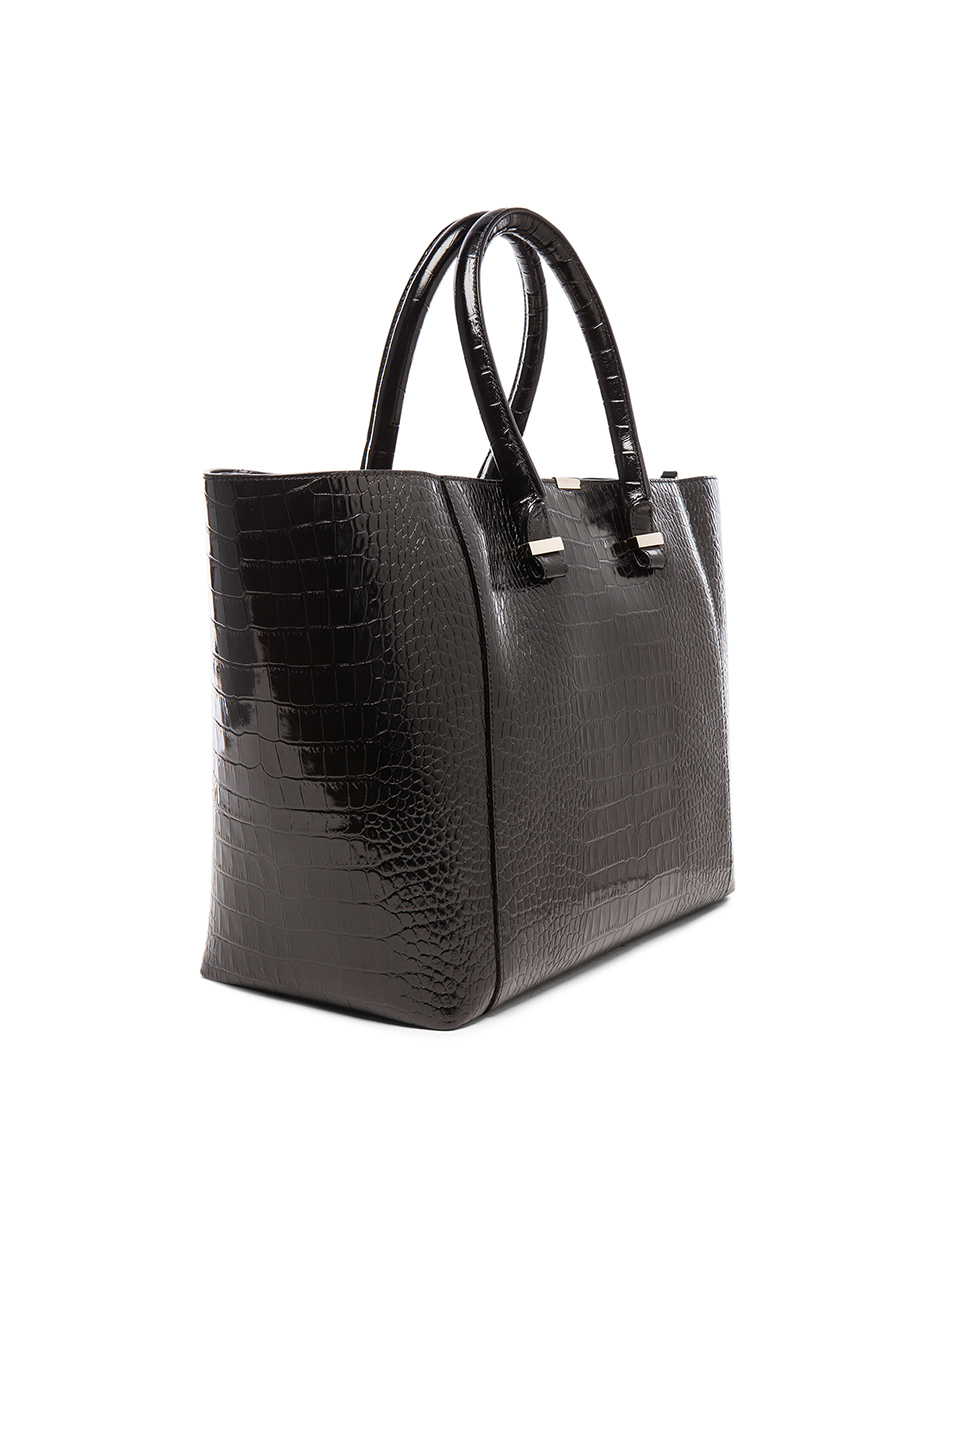 Victoria Beckham Liberty Printed Crocodile Tote in Black,Animal Print